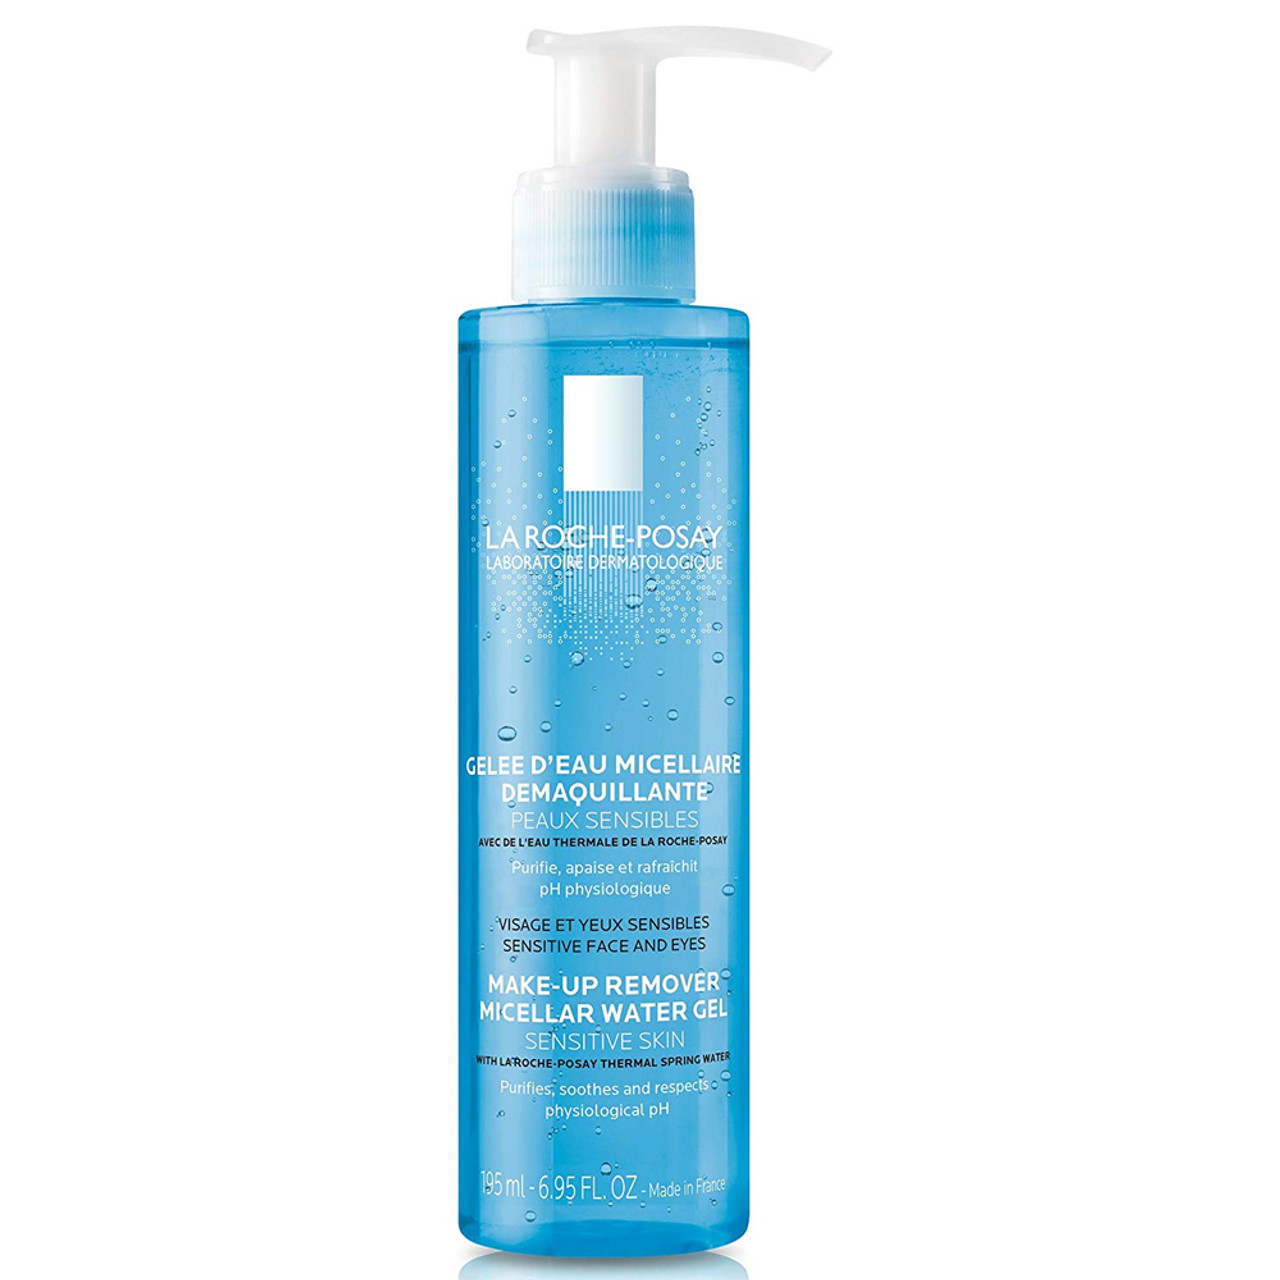 La Roche Posay Makeup Remover and Cleansing Micellar Water Gel